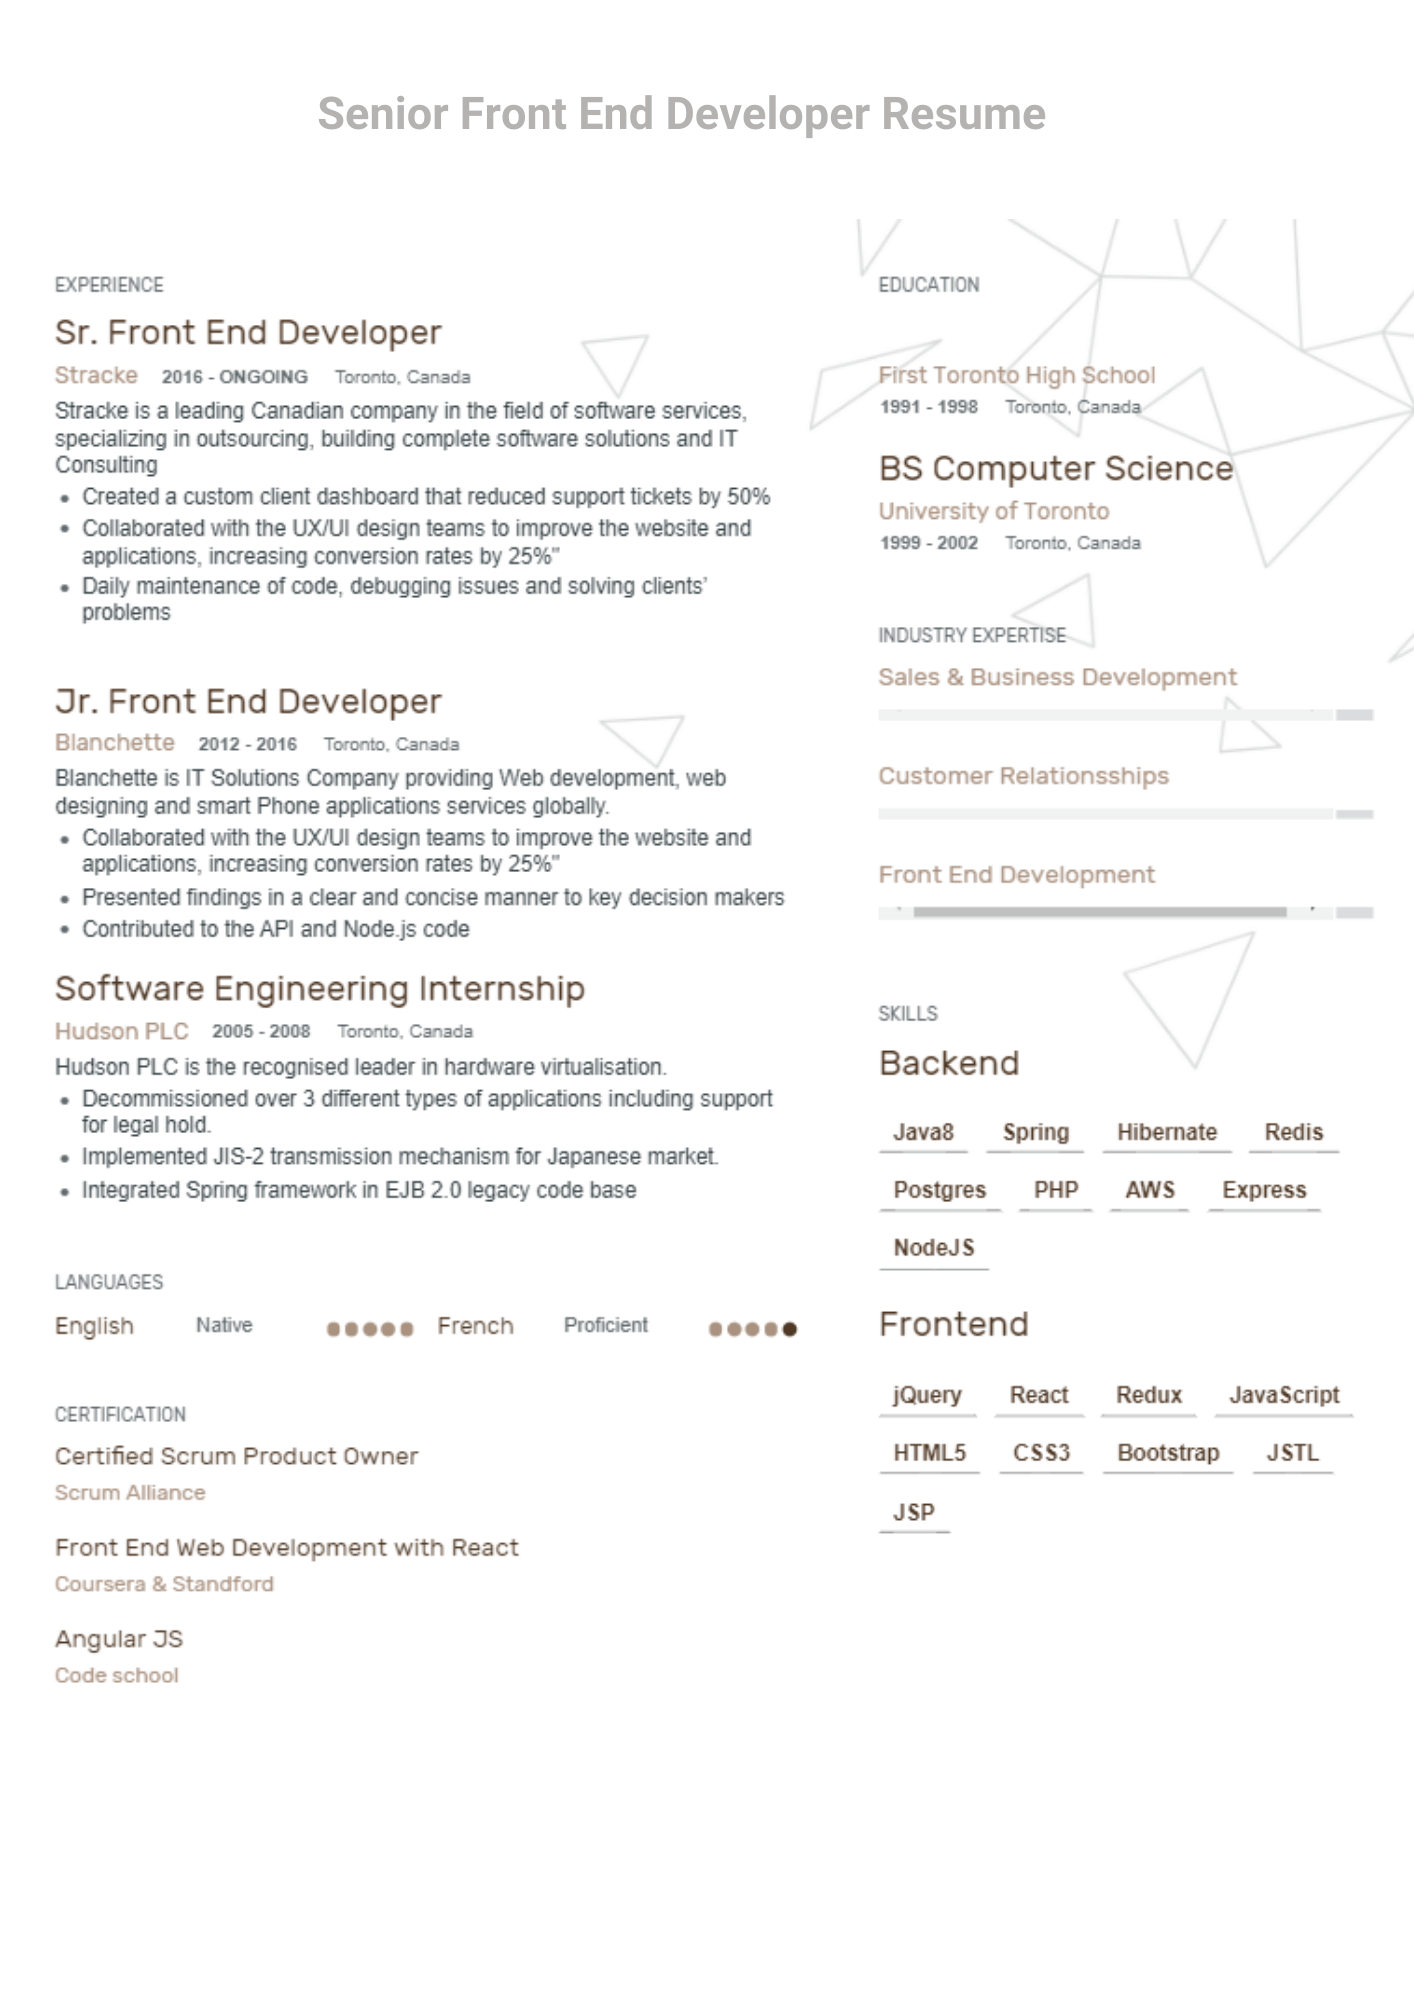 fronend engineer with react and java 8 skills cv format